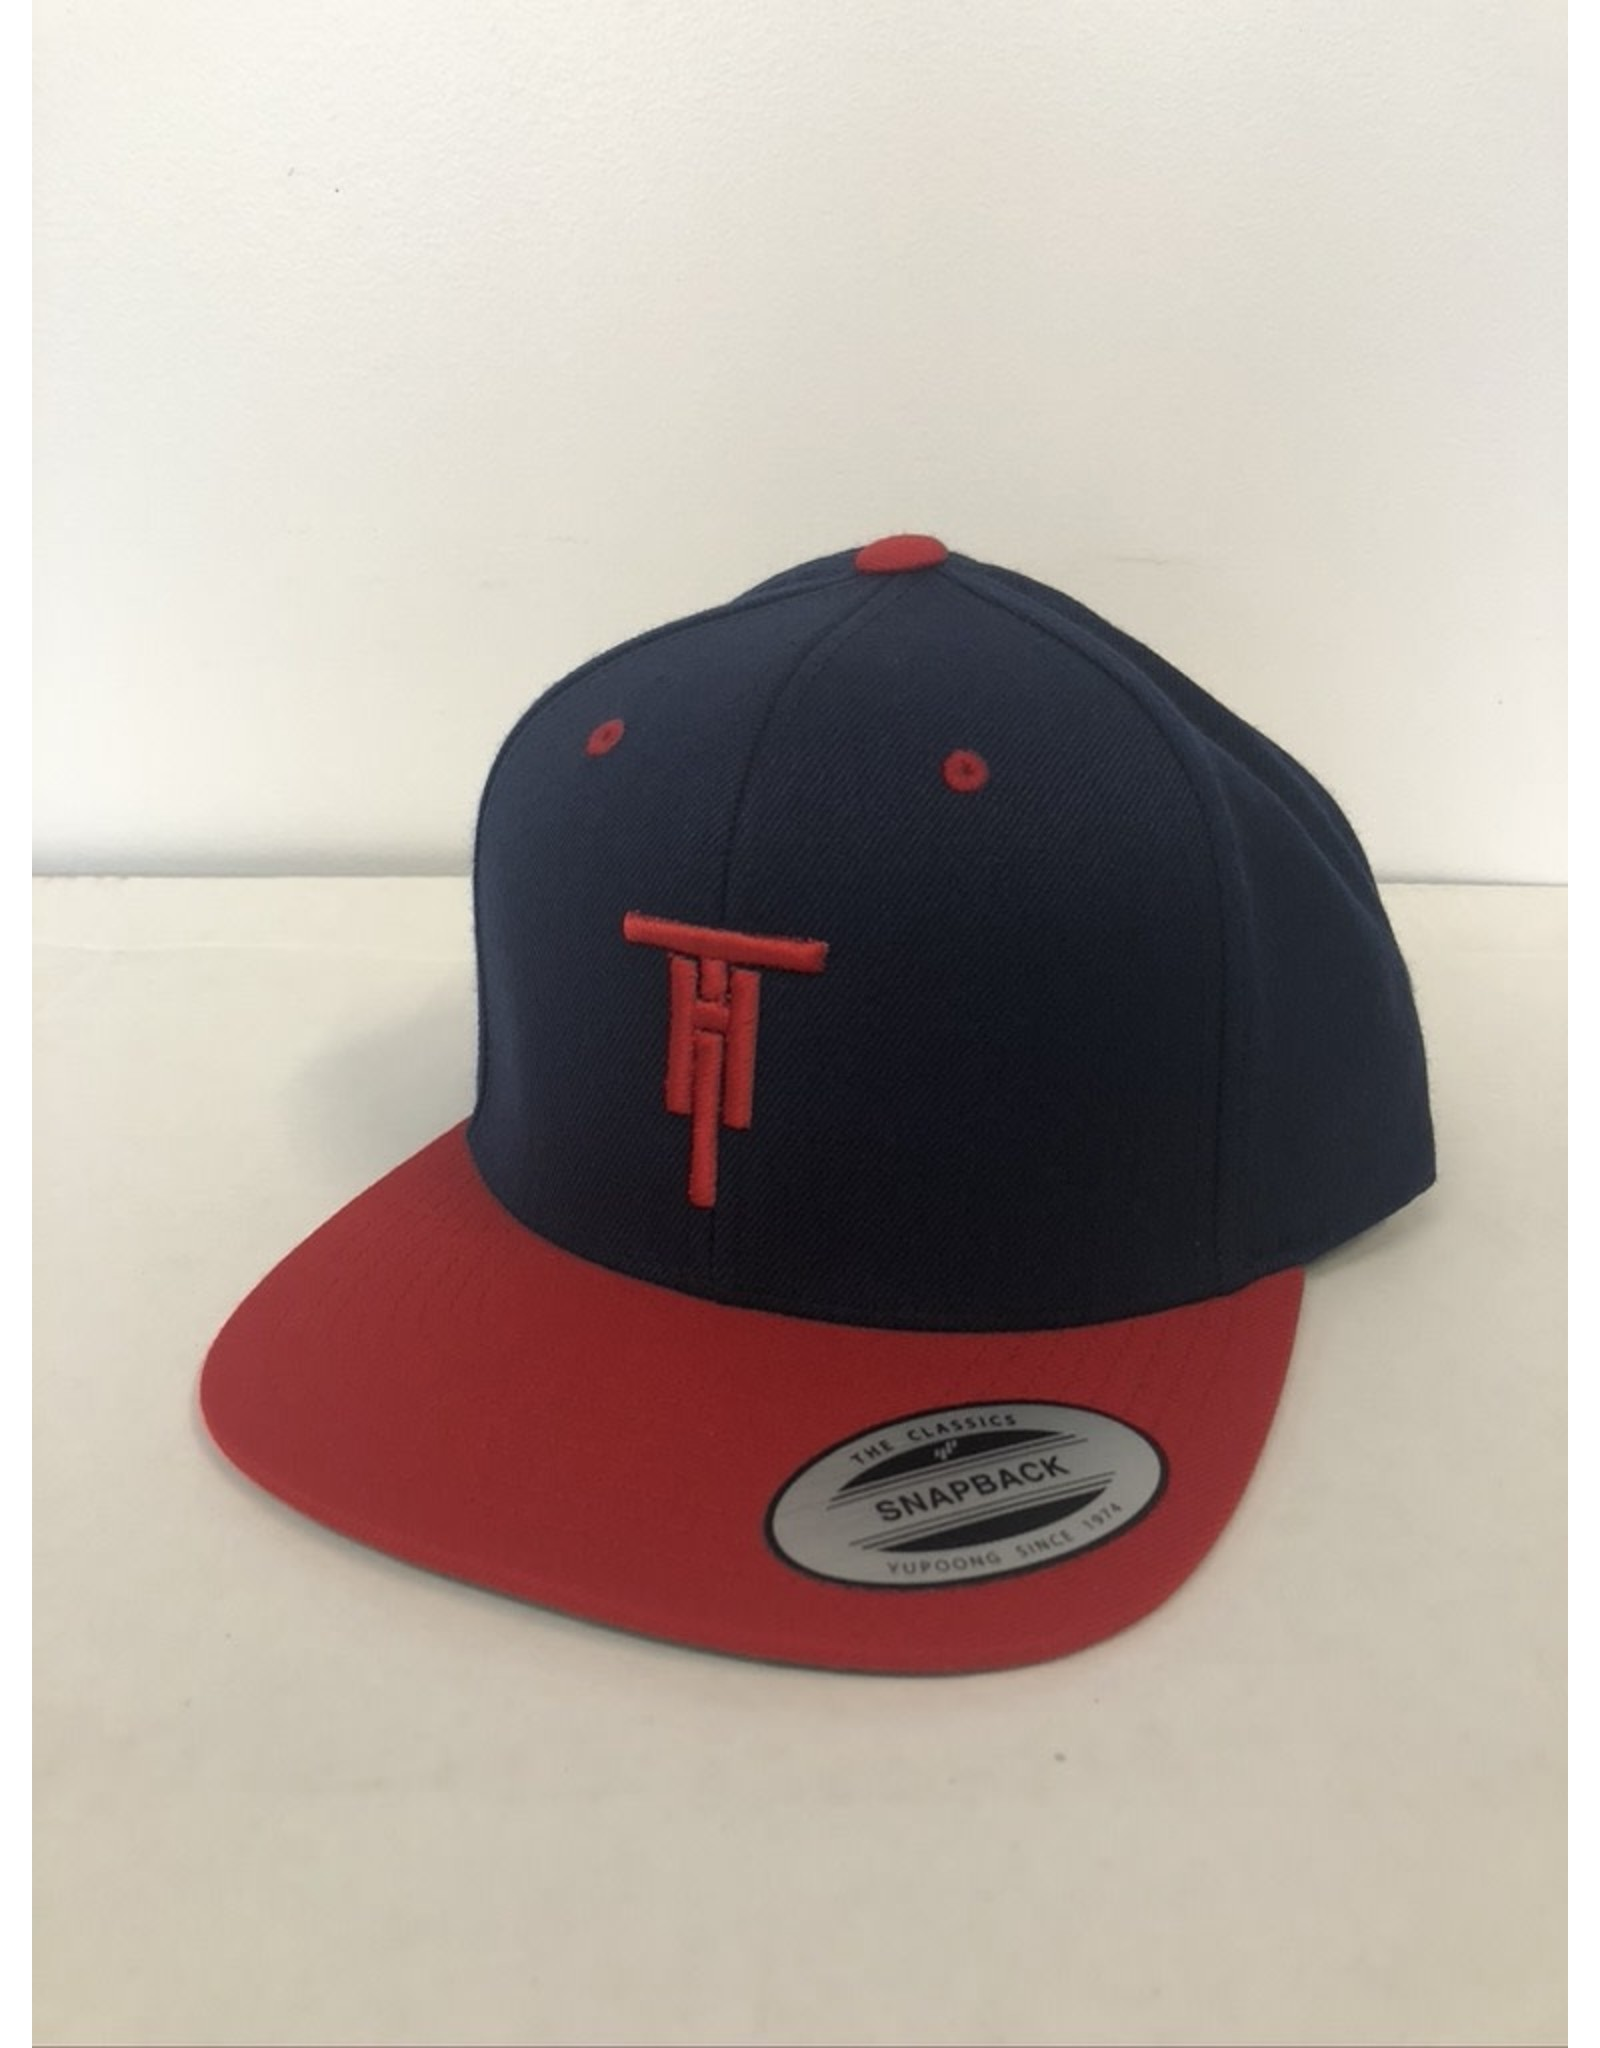 2021 Two Hoosiers Cyclery Classic Snapback Navy/Red